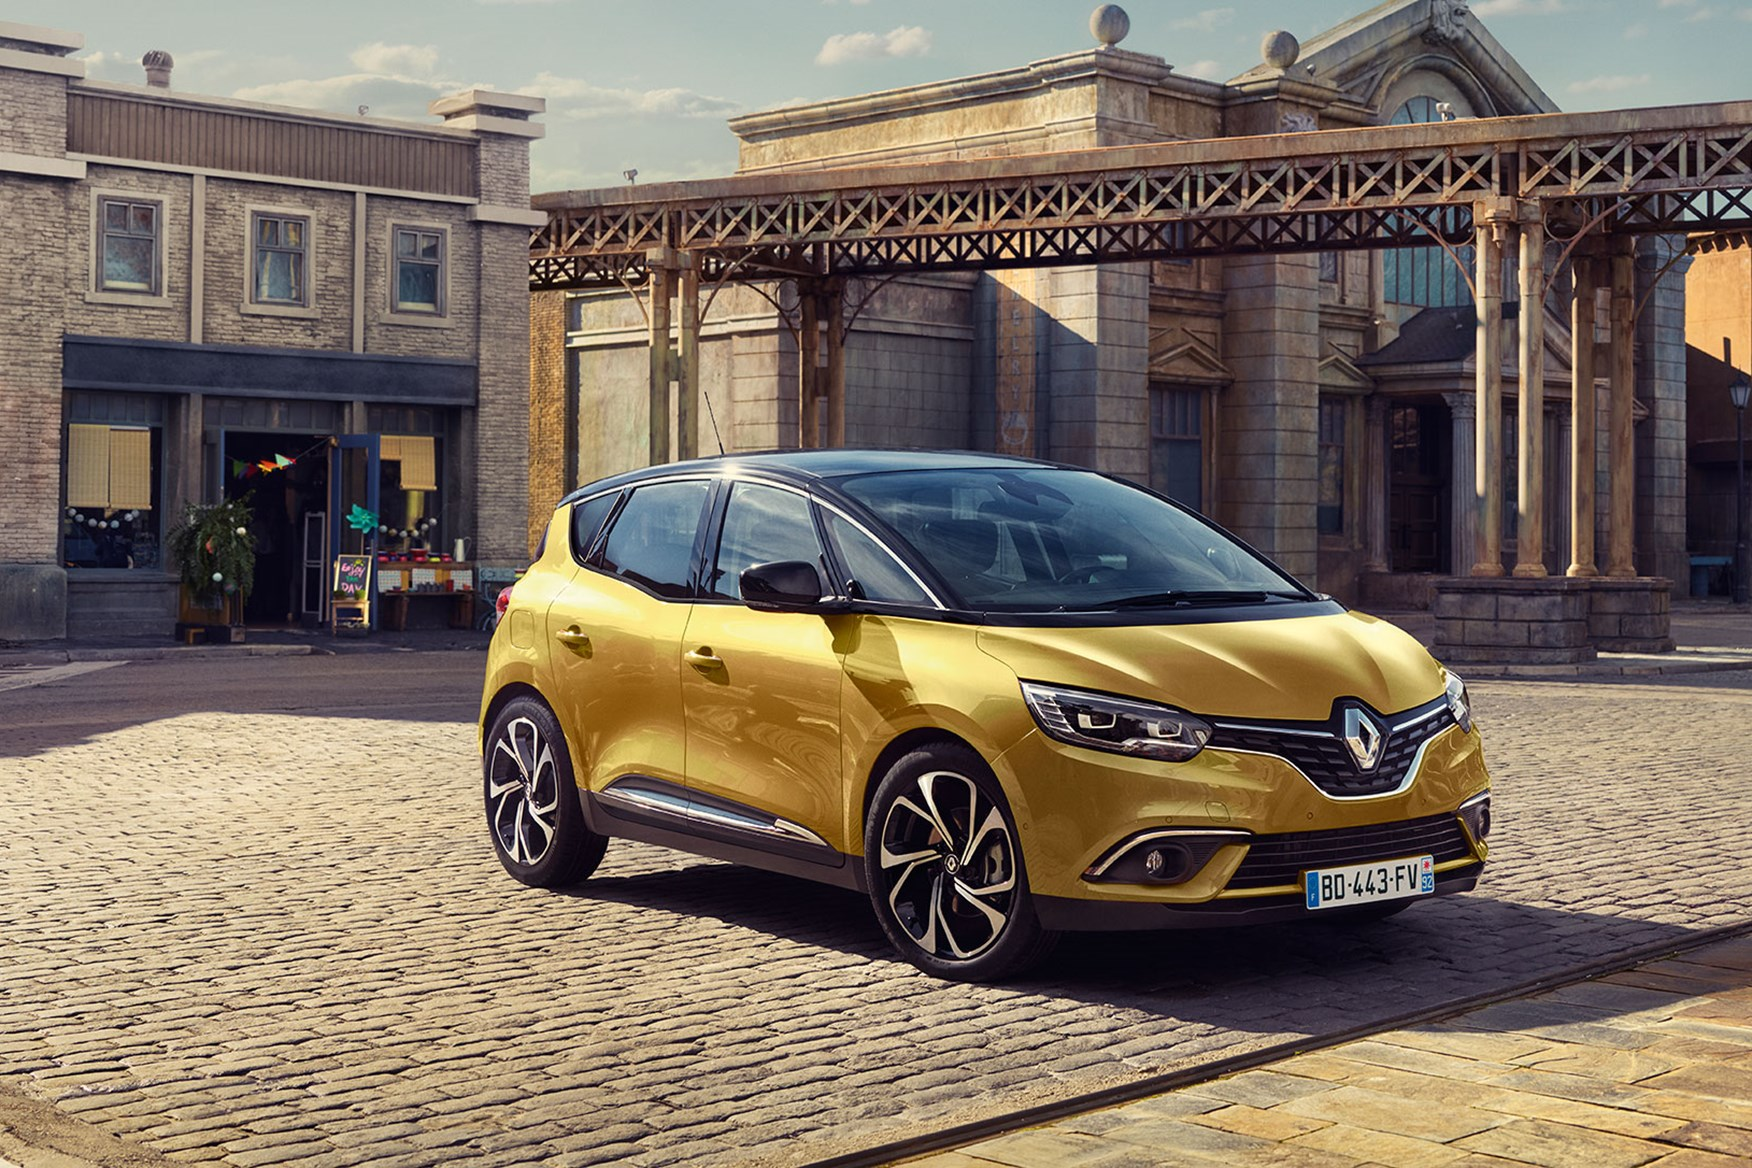 Renault unveils the all new, bigger, better 2016 Scenic